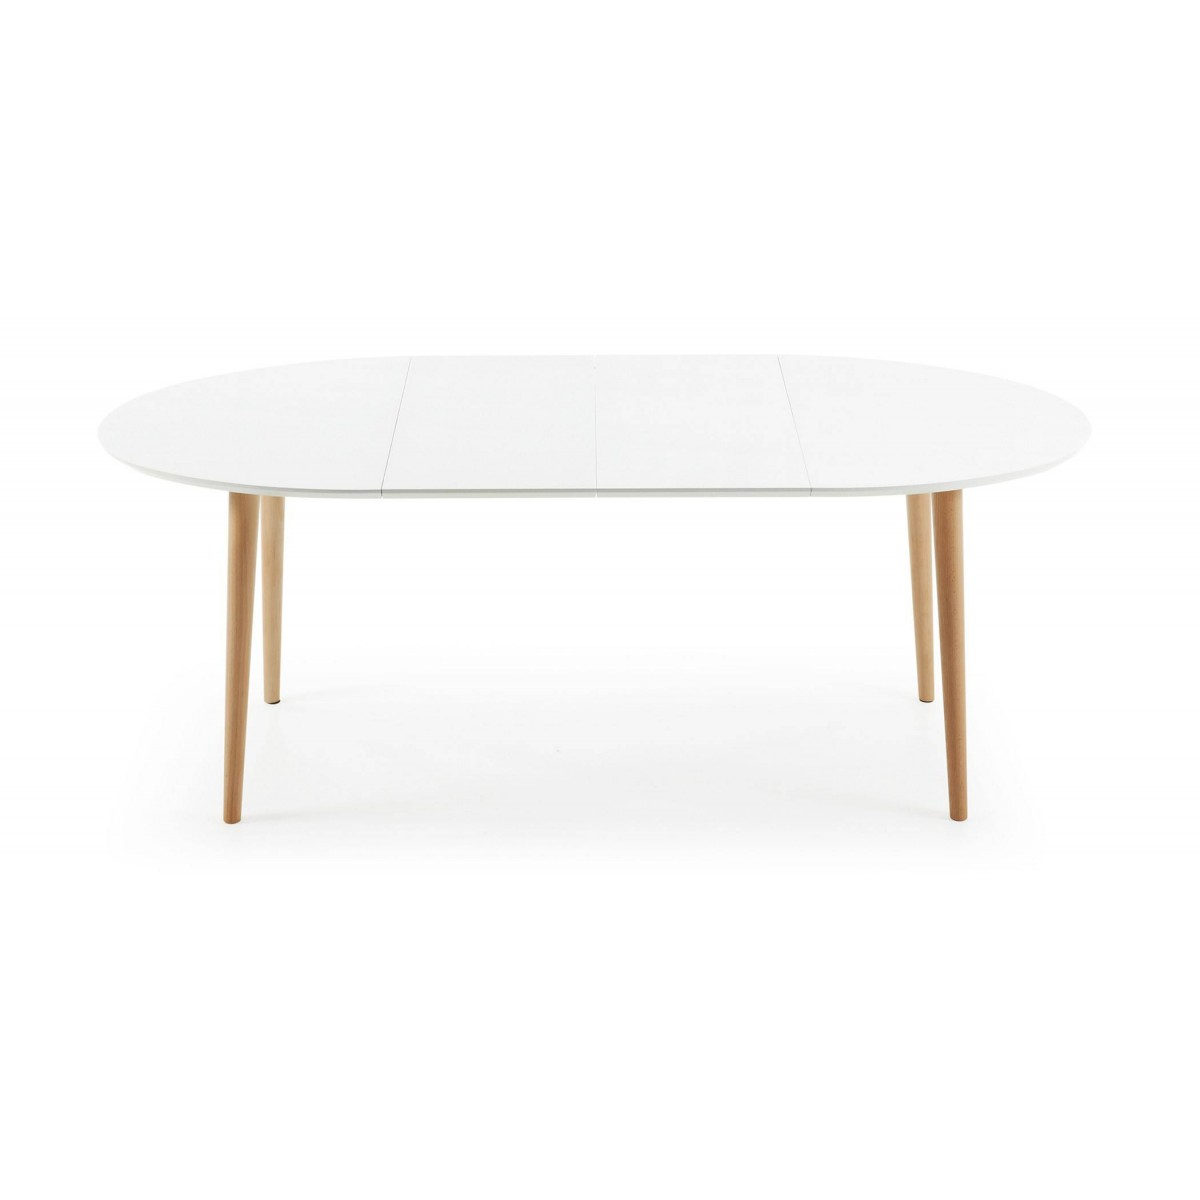 Mesa extensible madera lacada blanca scandy for Mesa extensible